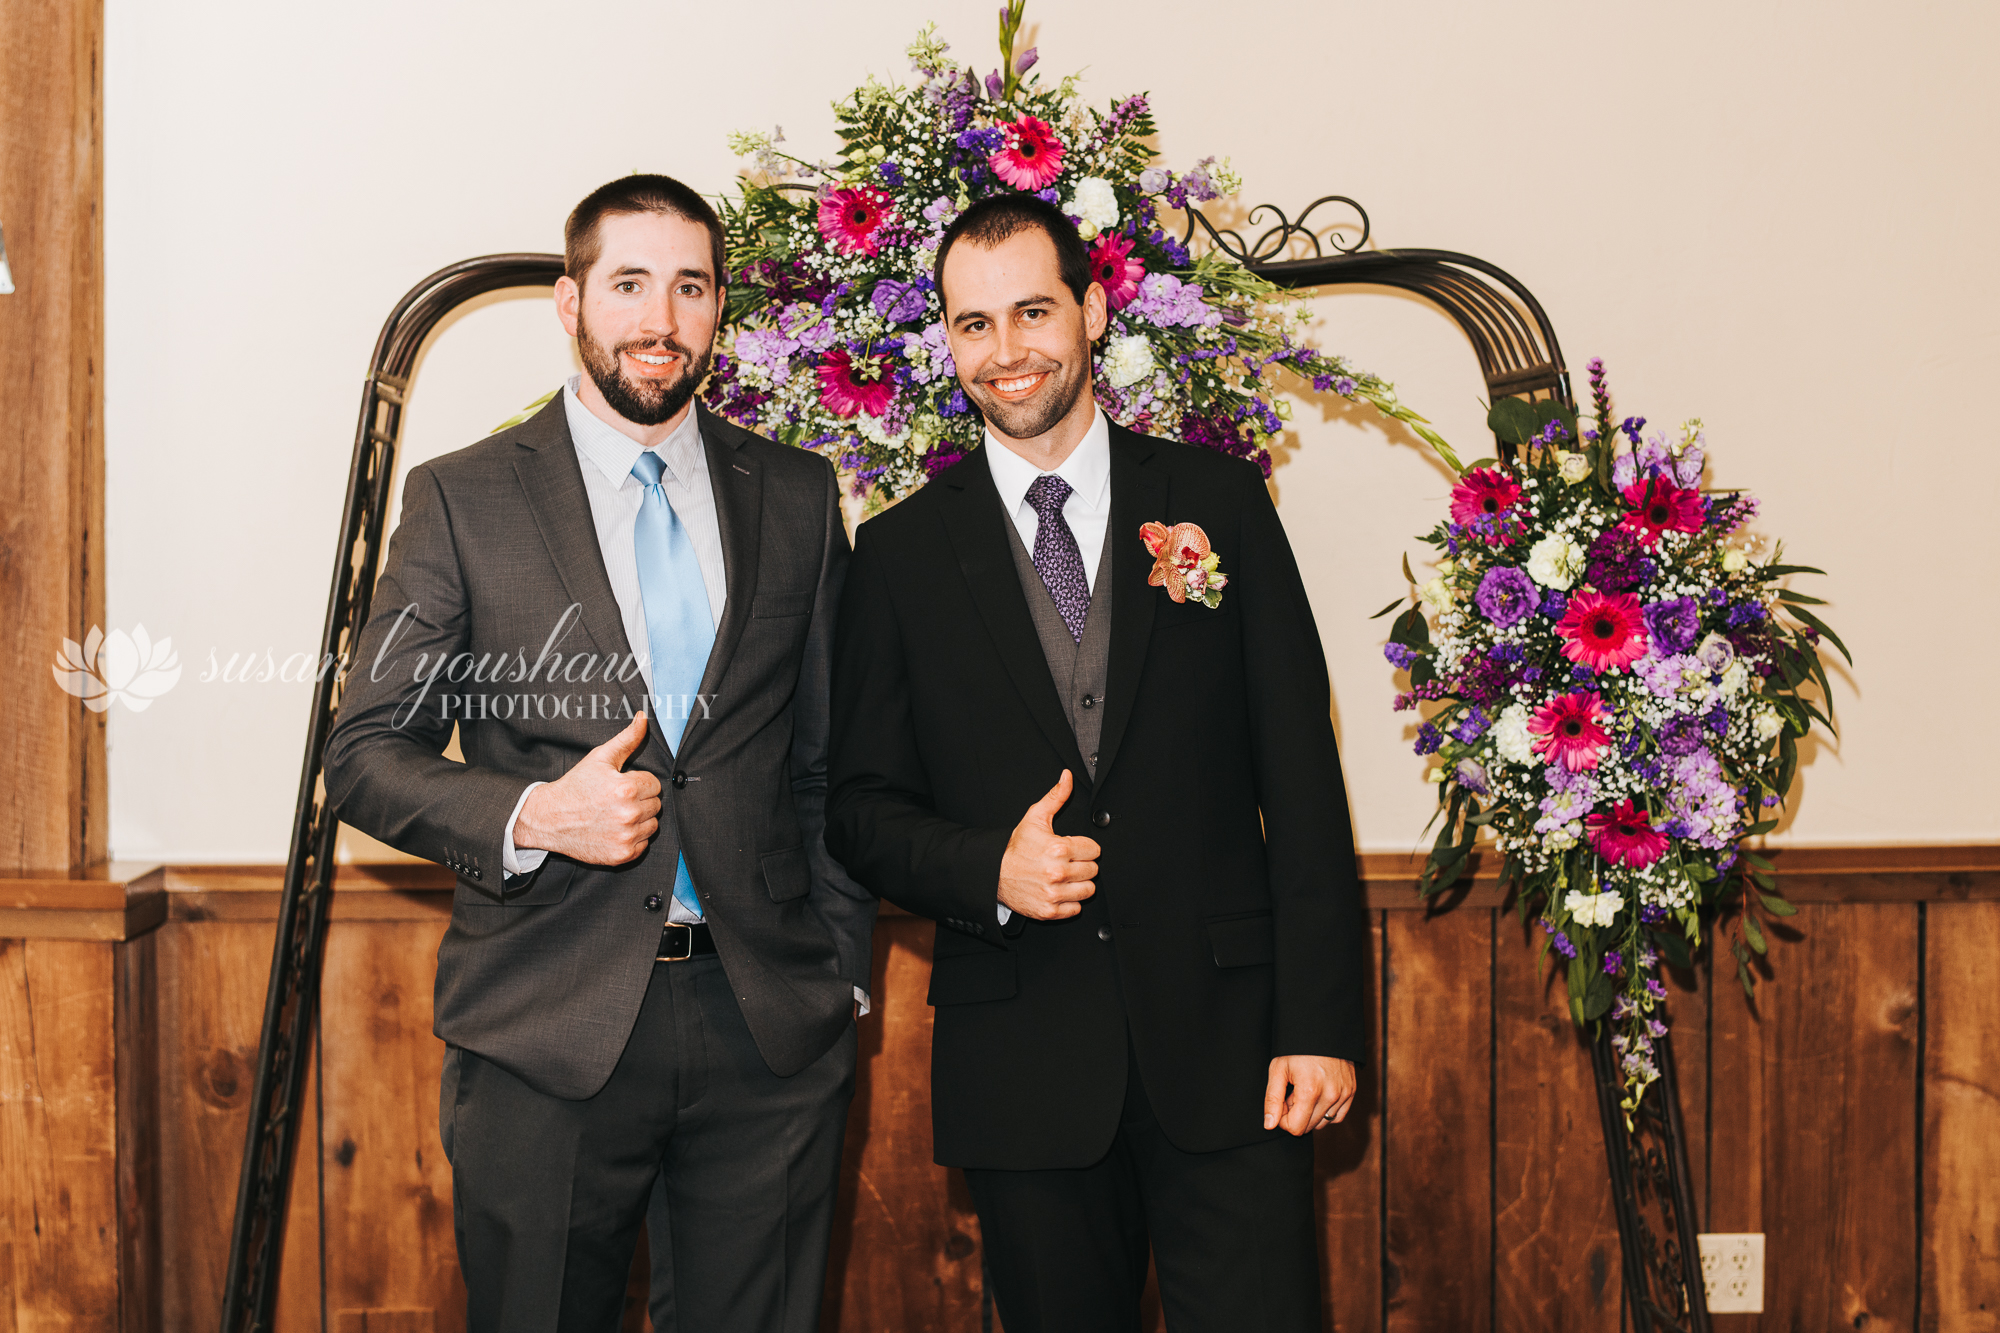 Adena and  Erik Wedding 05-17-2019 SLY Photography-113.jpg